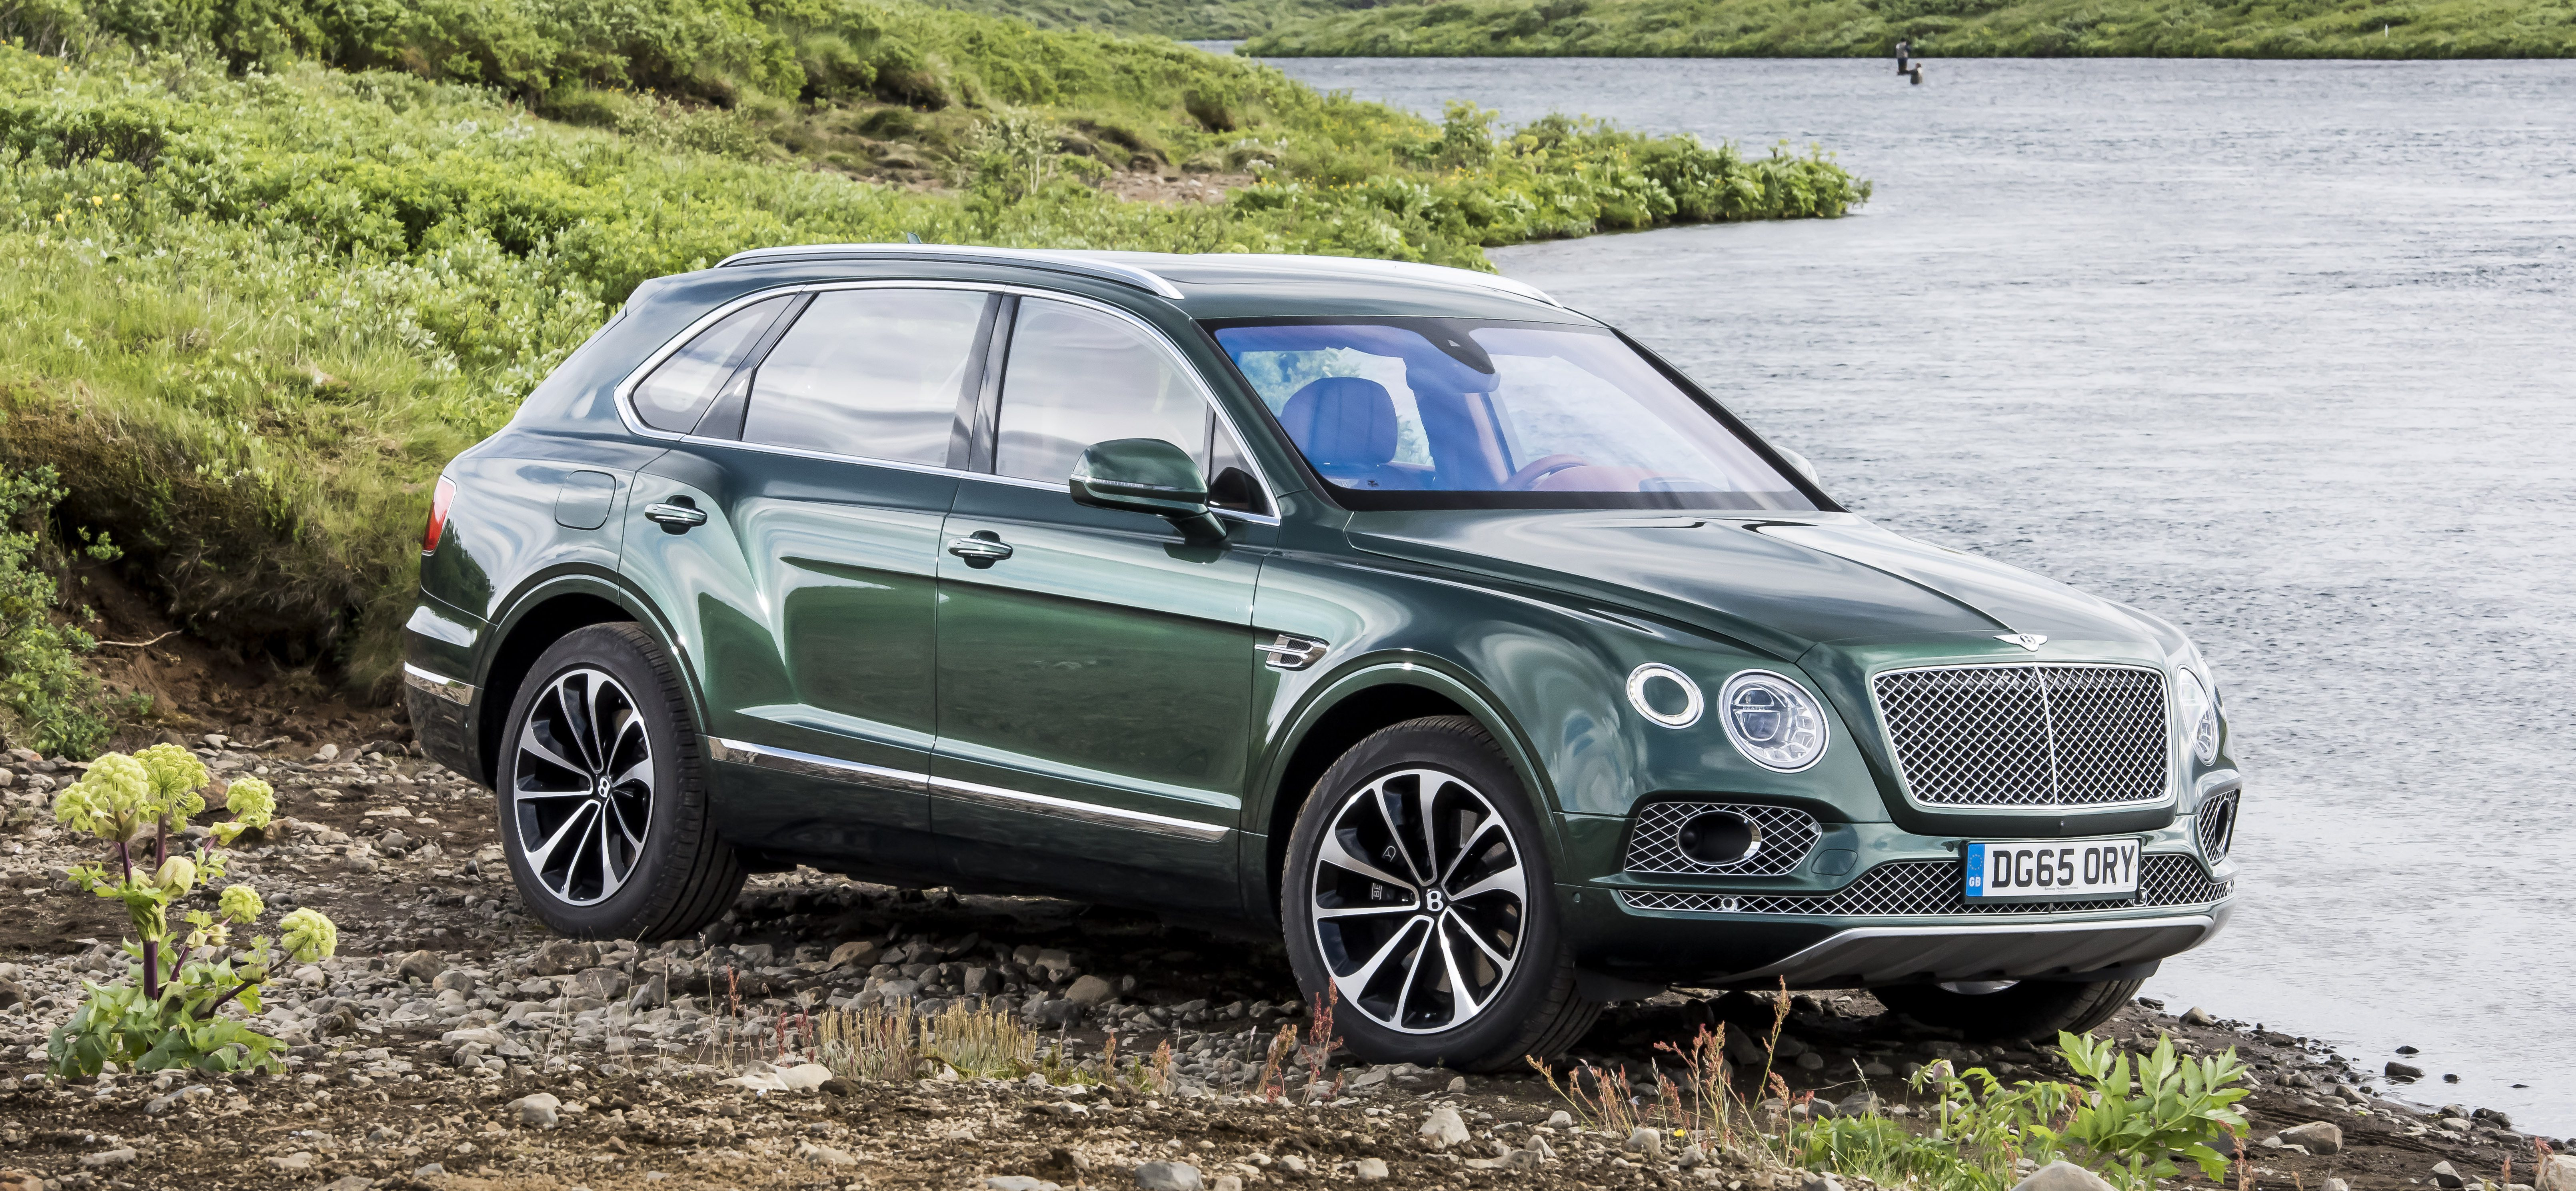 Bentley Bentayga, Iceland, July 2016 Photo James Lipman / jameslipman.com